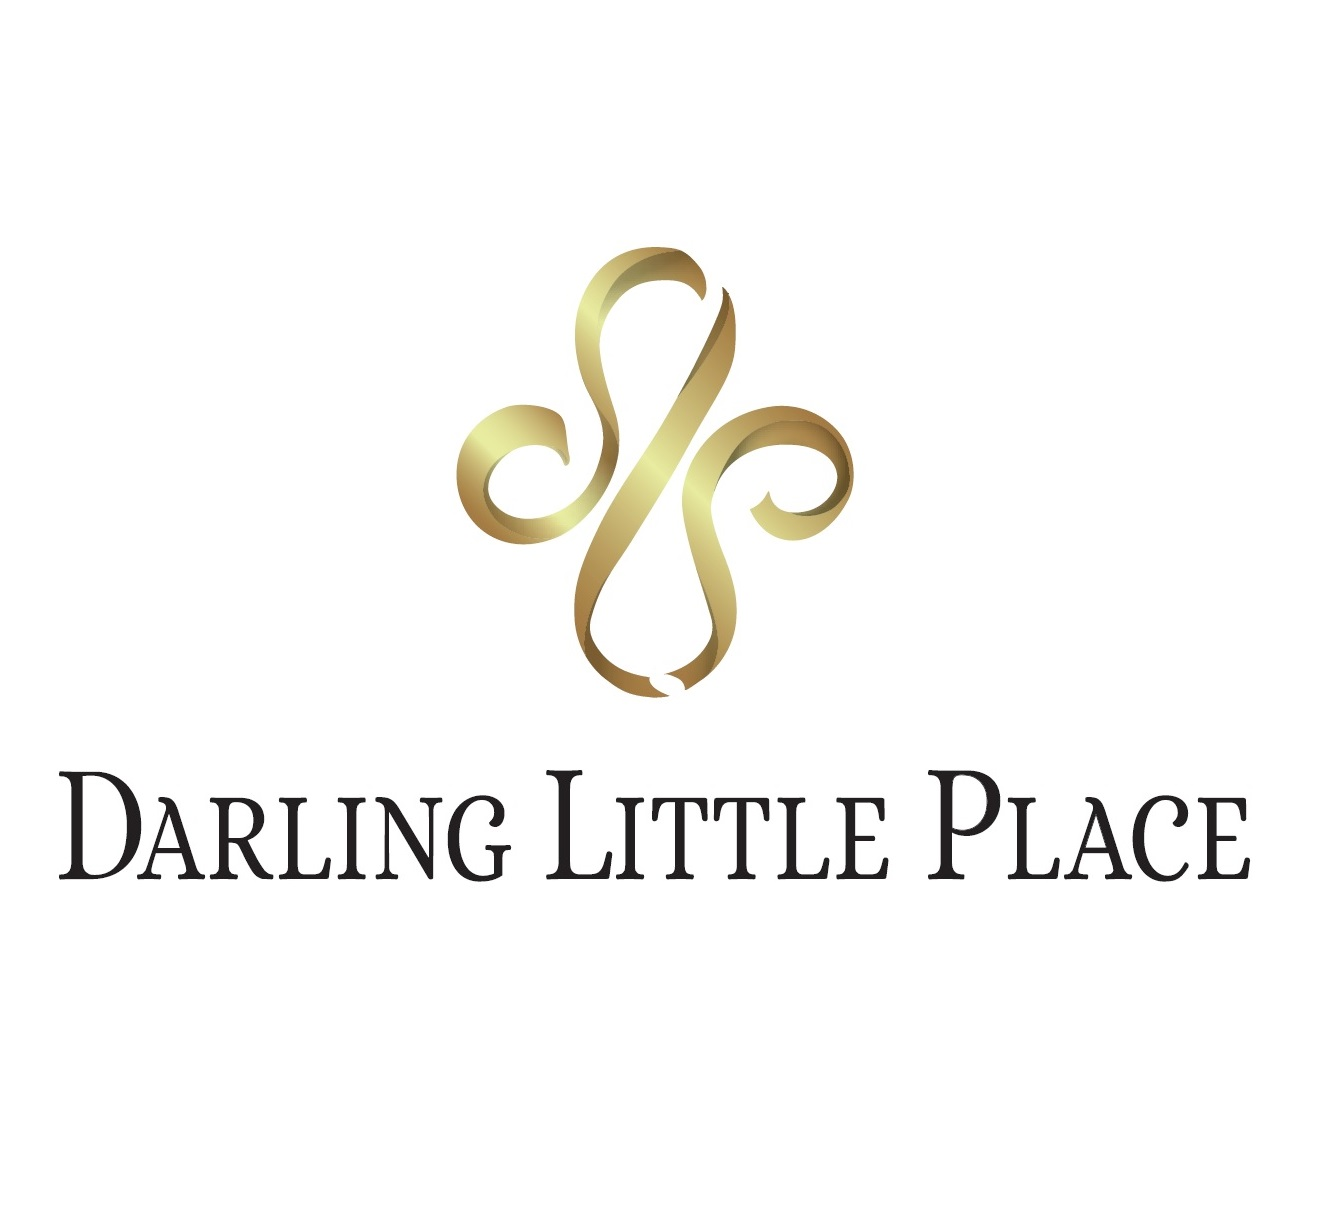 Darling Little Place